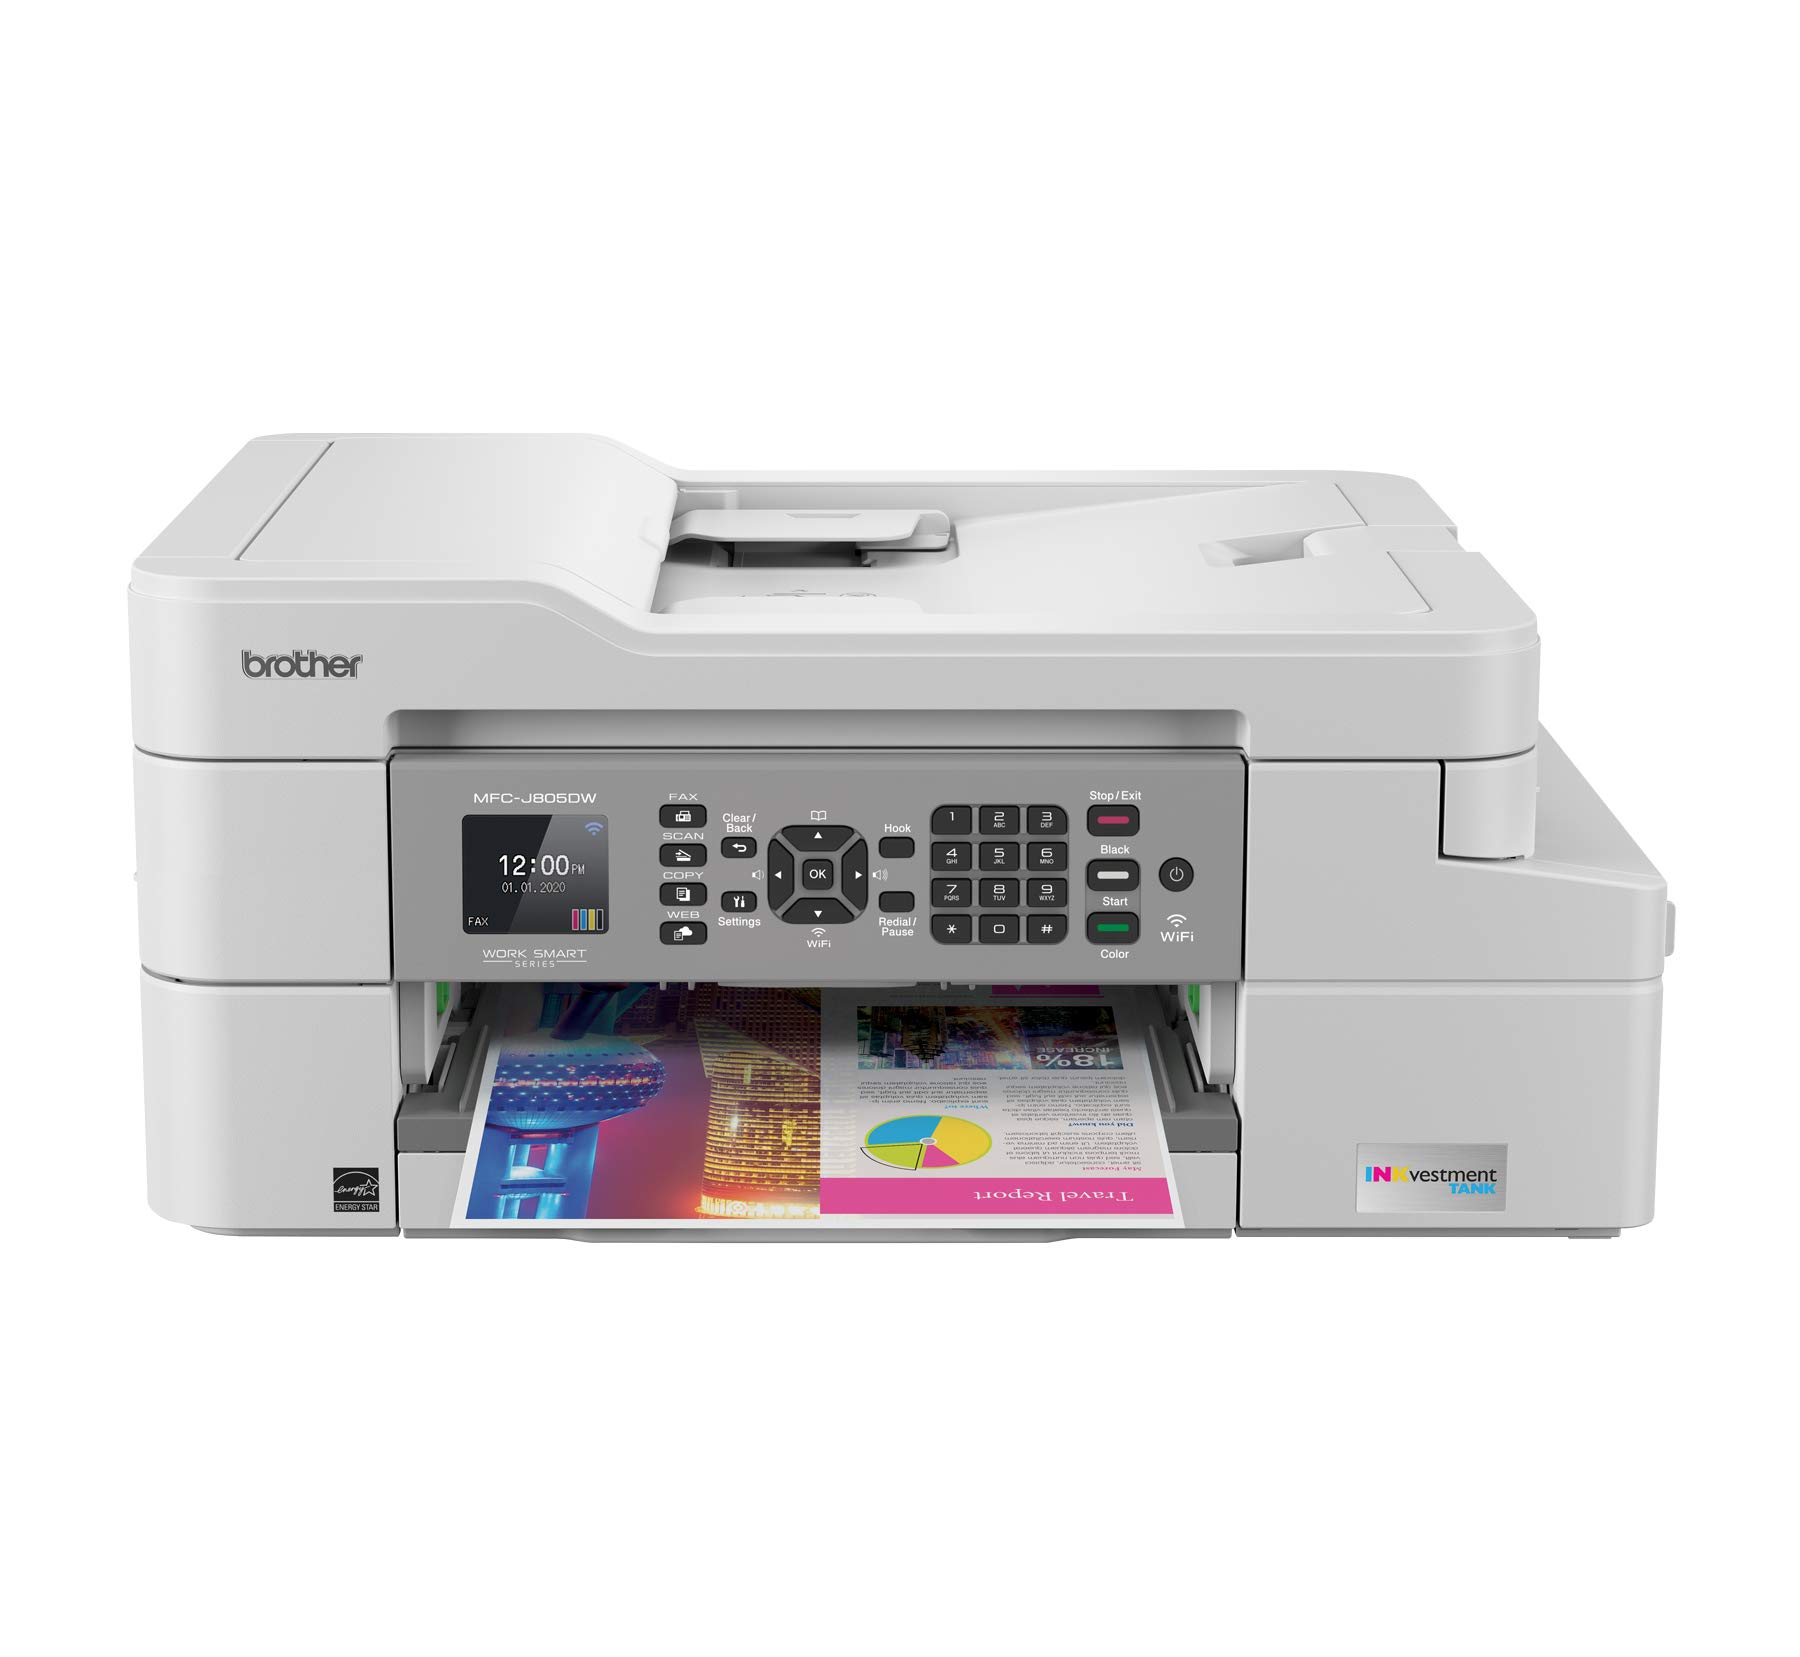 Brother MFC-J805DW INKvestmentTank Color Inkjet All-in-One Printer with Mobile Device and Duplex Printing with Up To 1-Year of Ink In-box by Brother (Image #1)